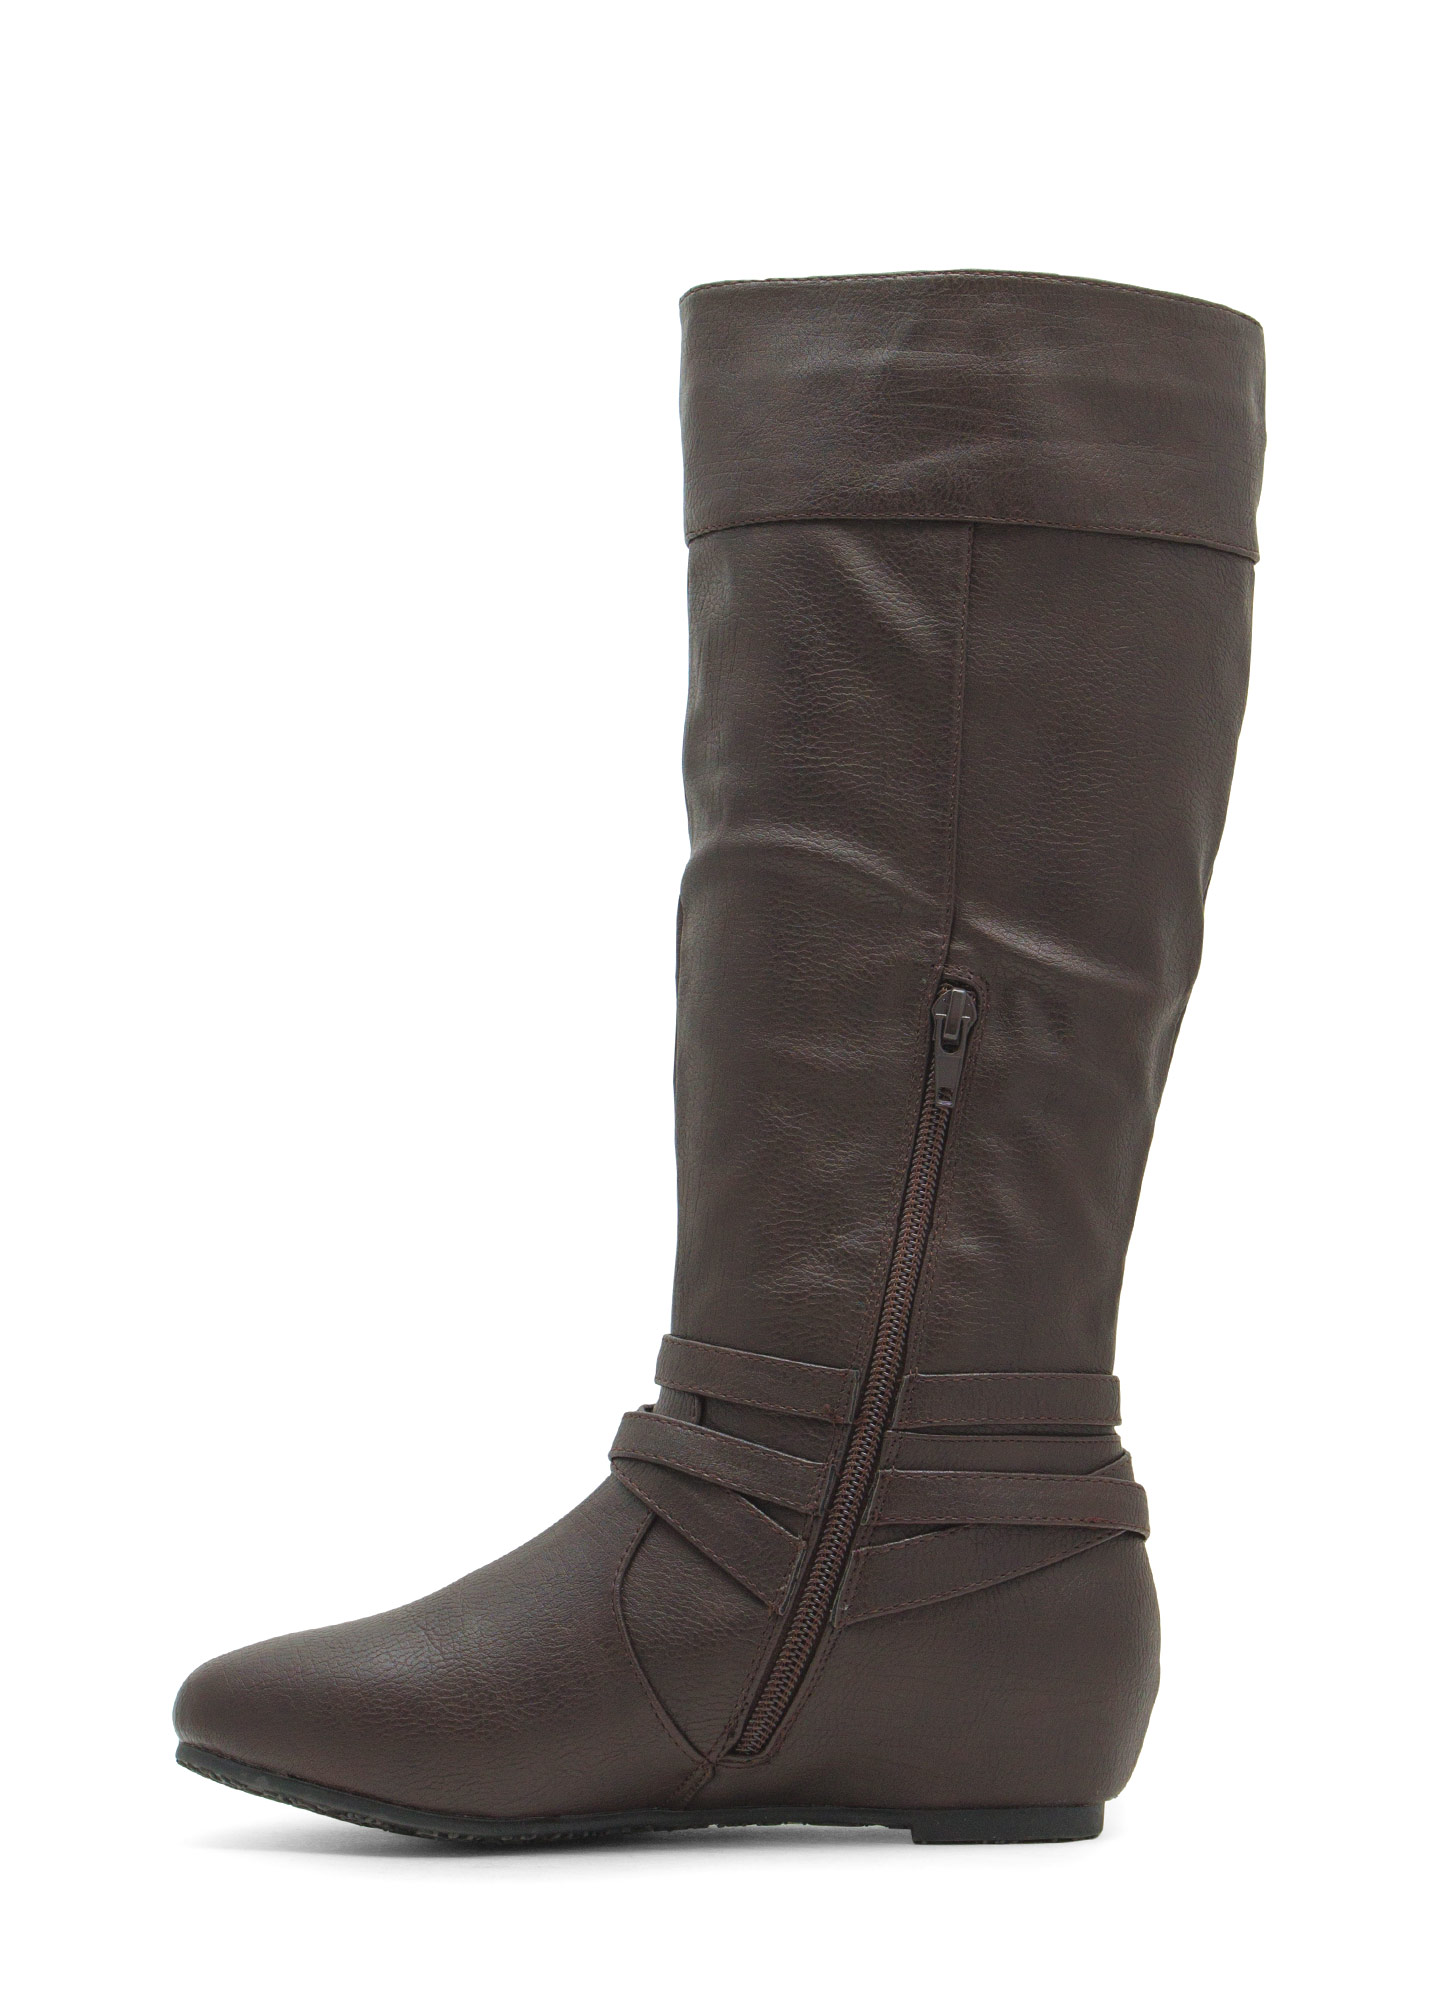 Tri-Buckle Flat Boots BROWN